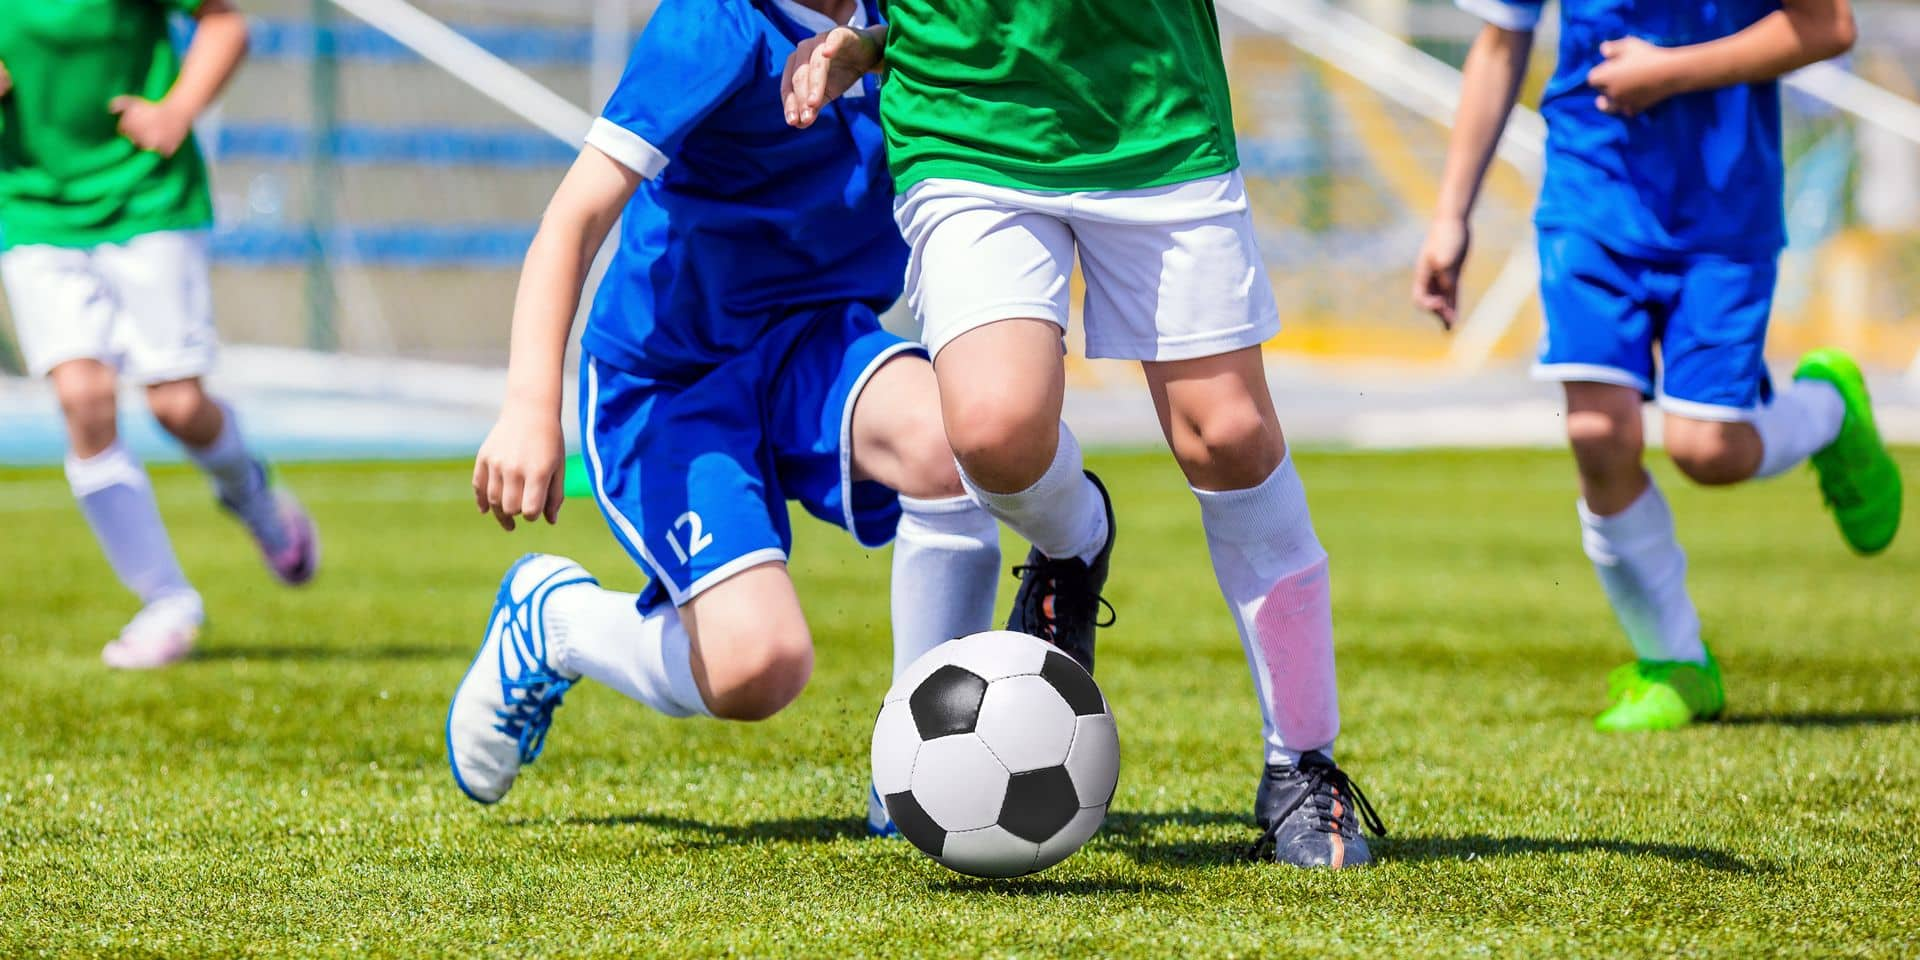 Running,Soccer,Football,Players.,Footballers,Kicking,Football,Match,Game.,Young